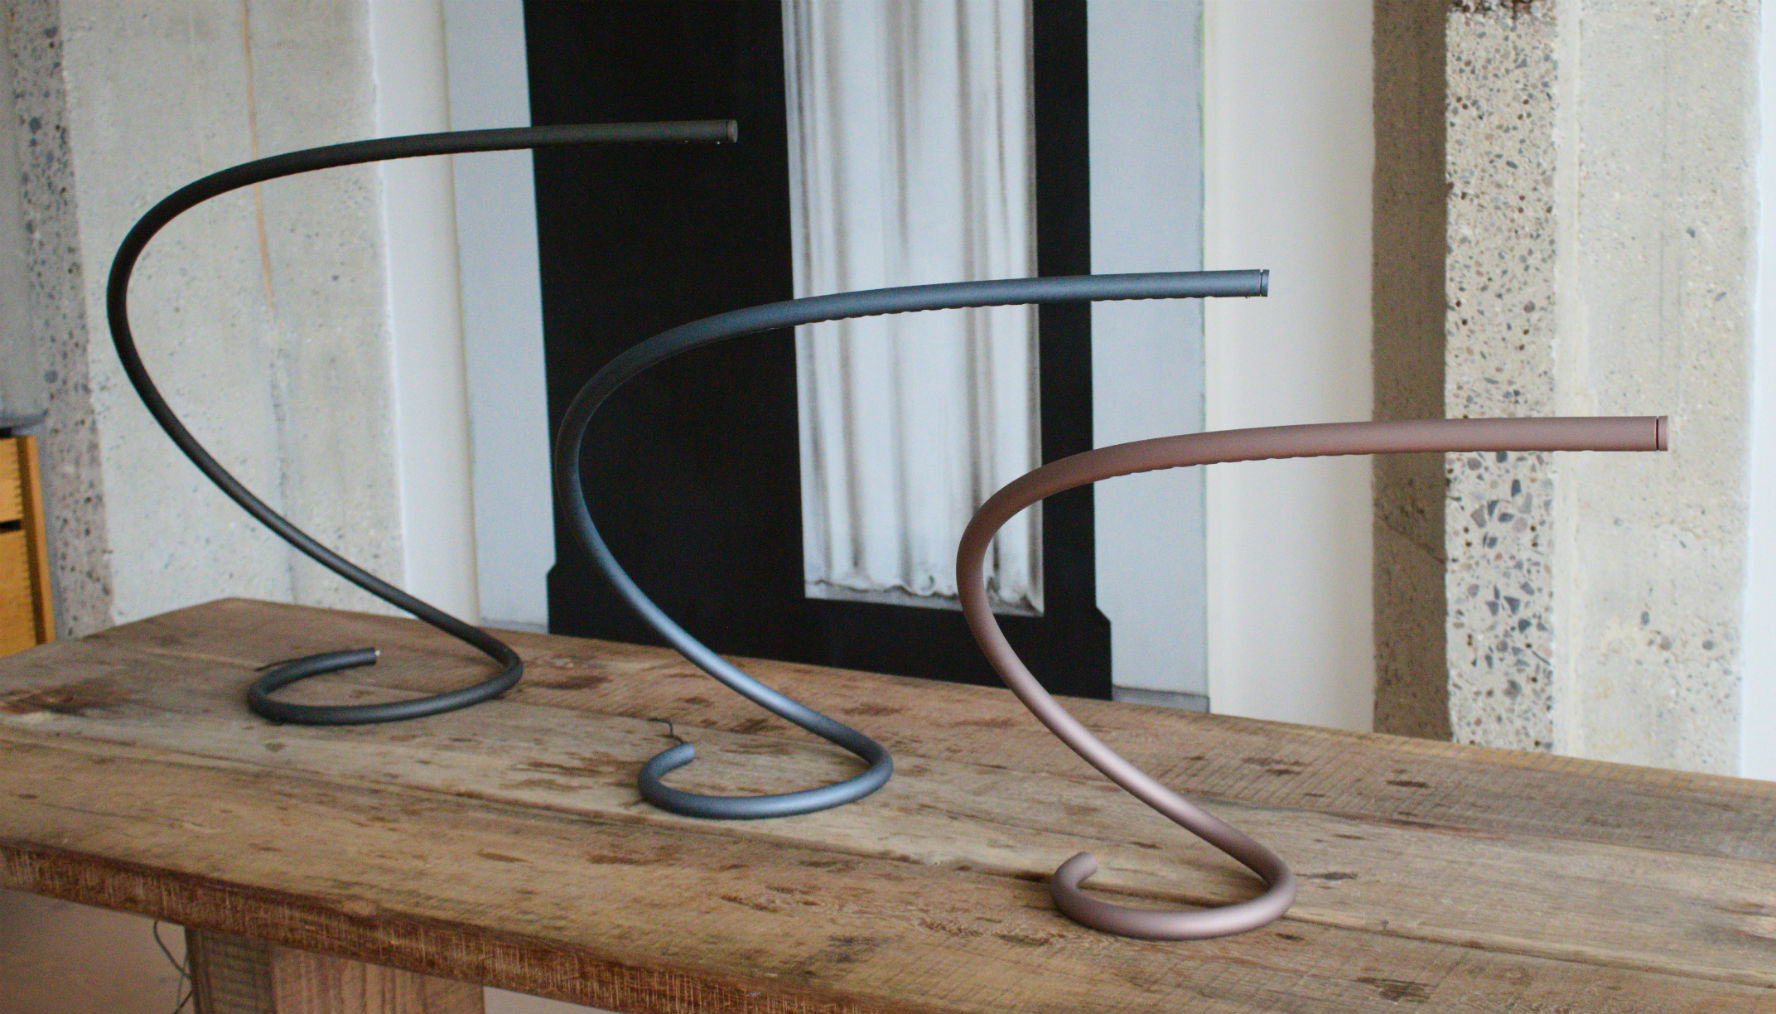 The Squiggle Lamp